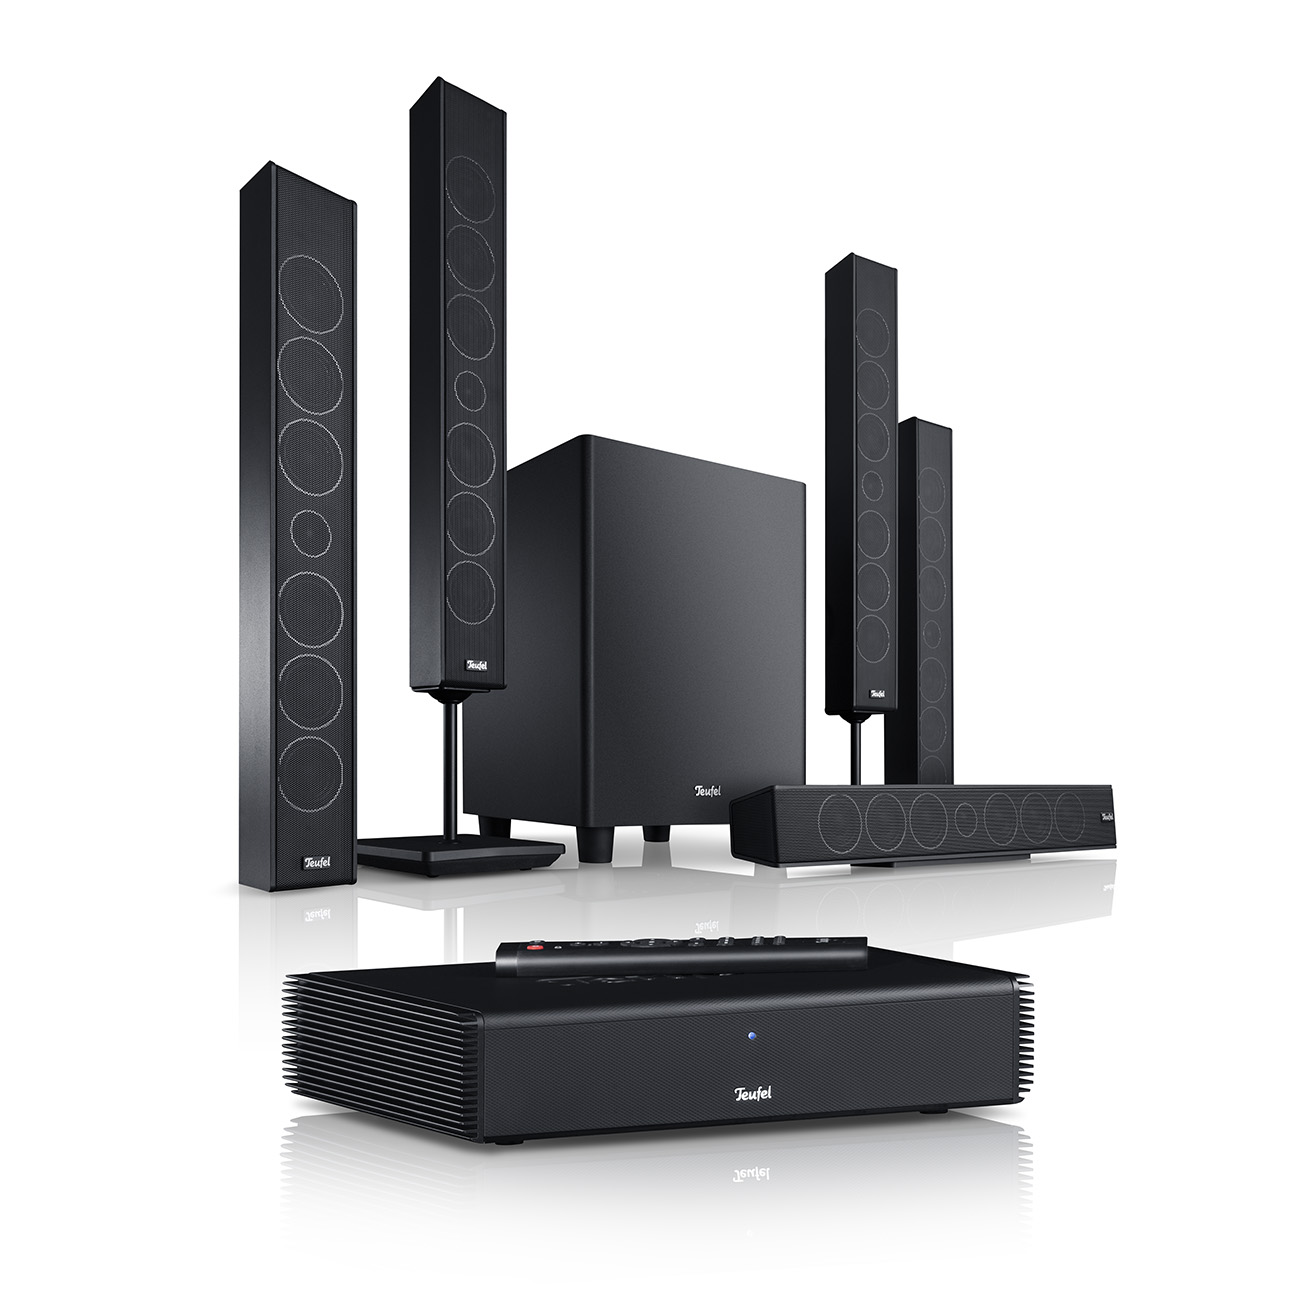 The Varion Complete home cinema system